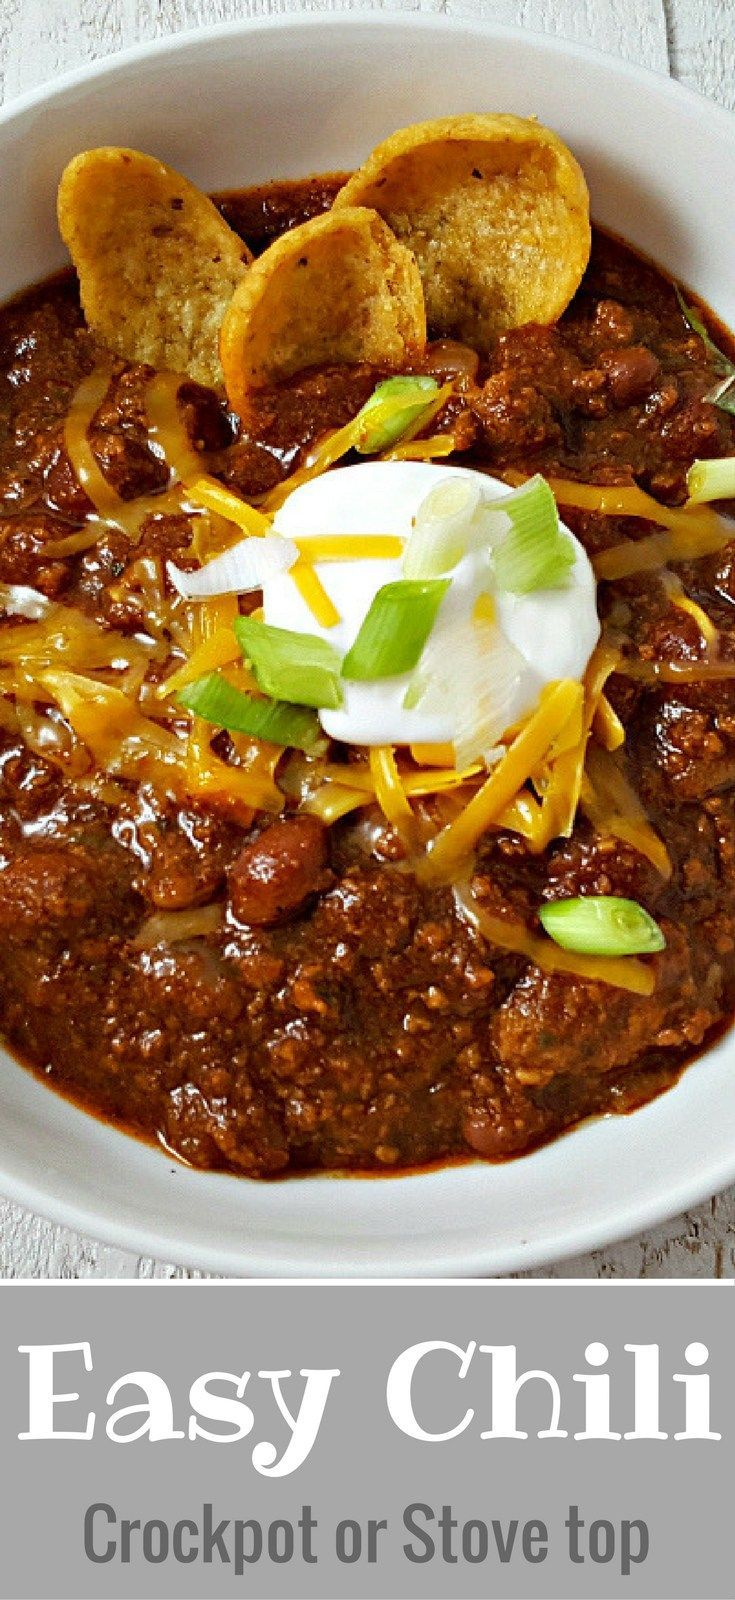 Easy Crockpot Chili Recipe for Two - This crockpot Chili for two is super easy and flavorful with a secret ingredient of A1 steak sauce. It's that time of year when we love to fill our bellies with a hearty helping of delicious chili. This is our favorite slow cooker chili but it can also be made on the stove top in just 15 minutes.